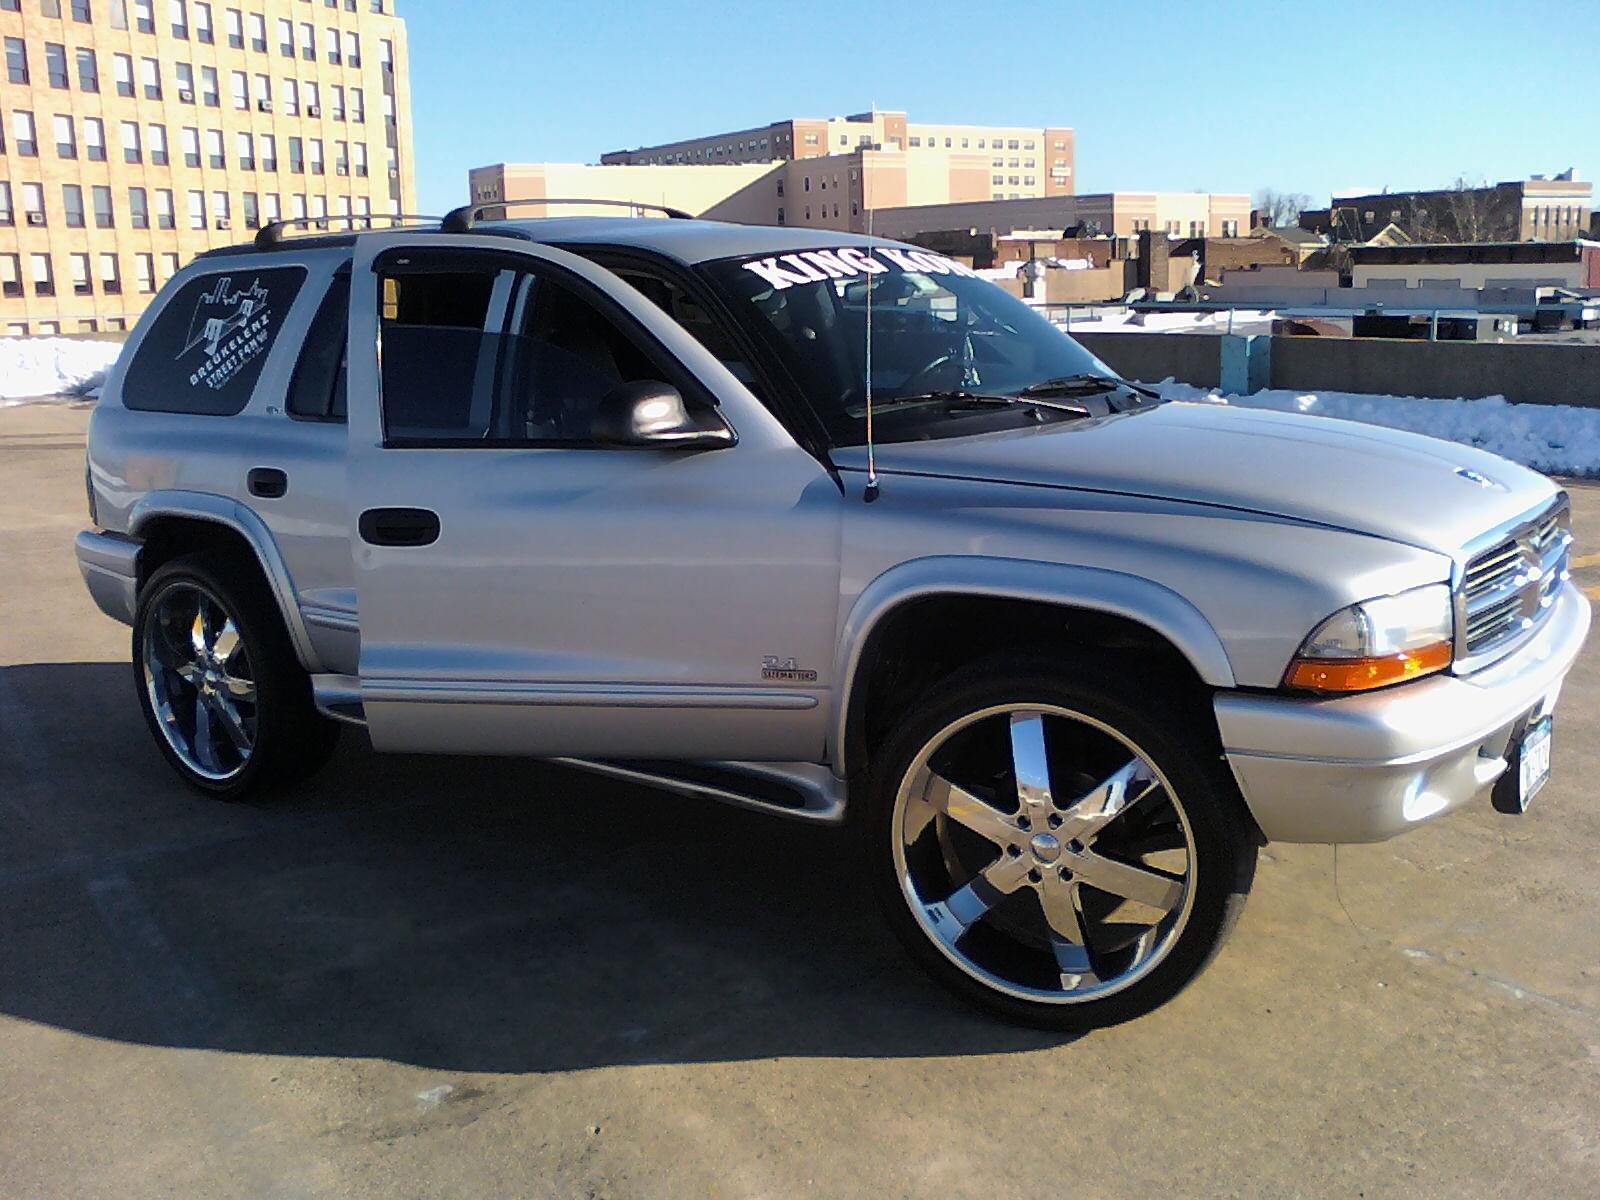 2002 Dodge Durango Information And Photos Zombiedrive